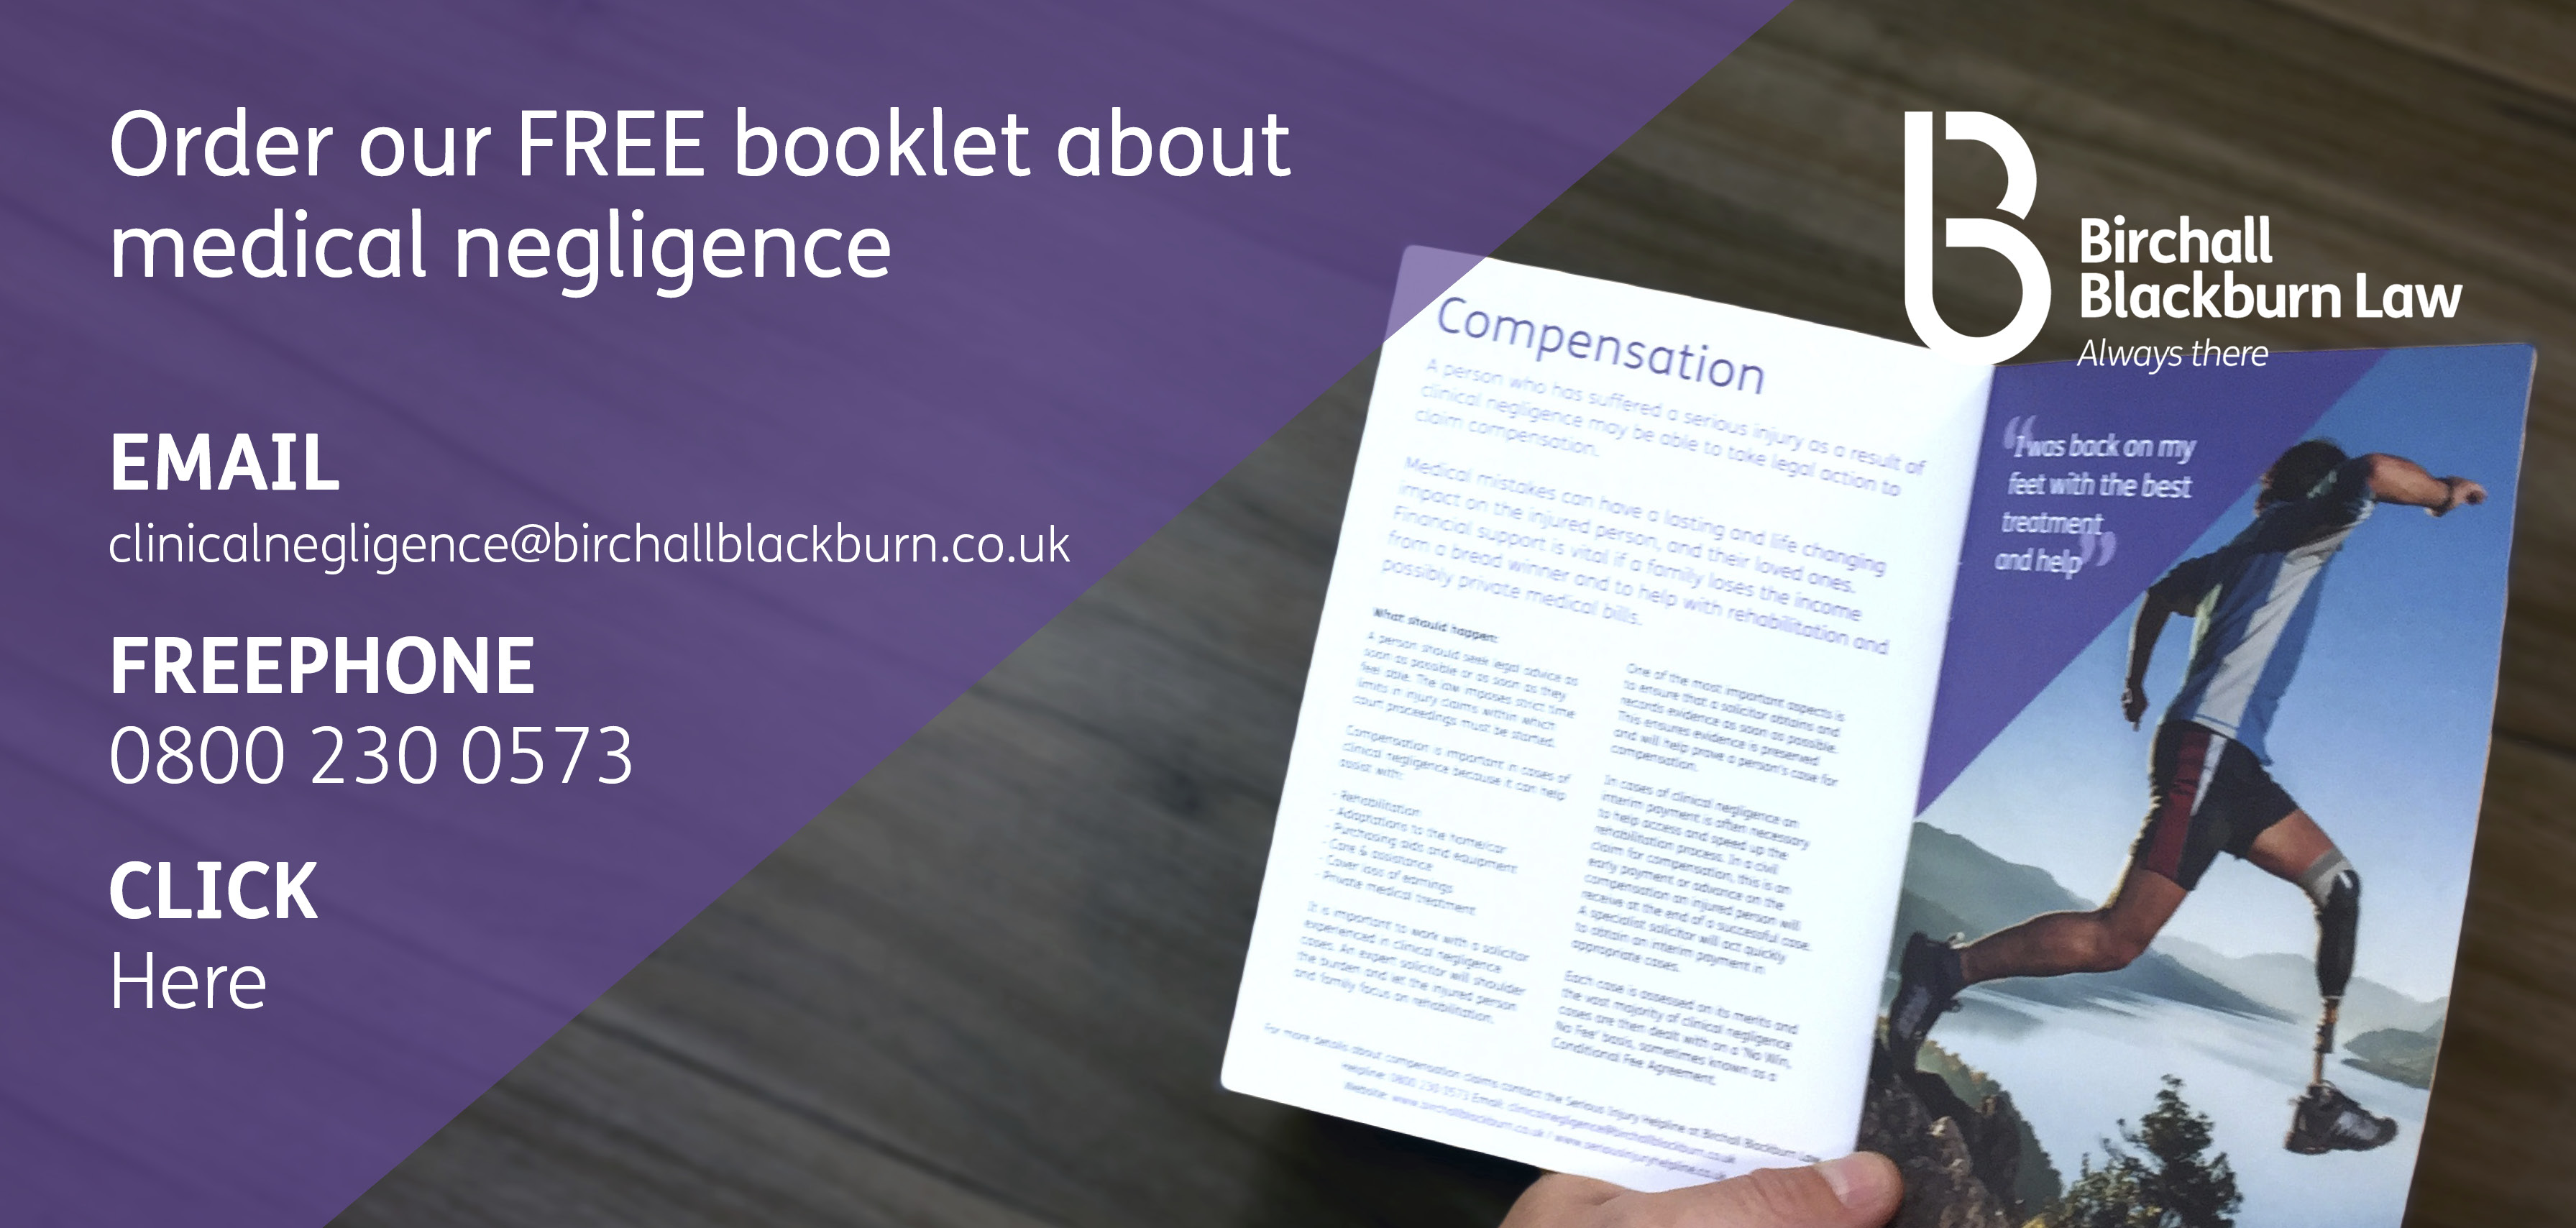 Order the free Birchall Blackburn Law booklet about medical negligence